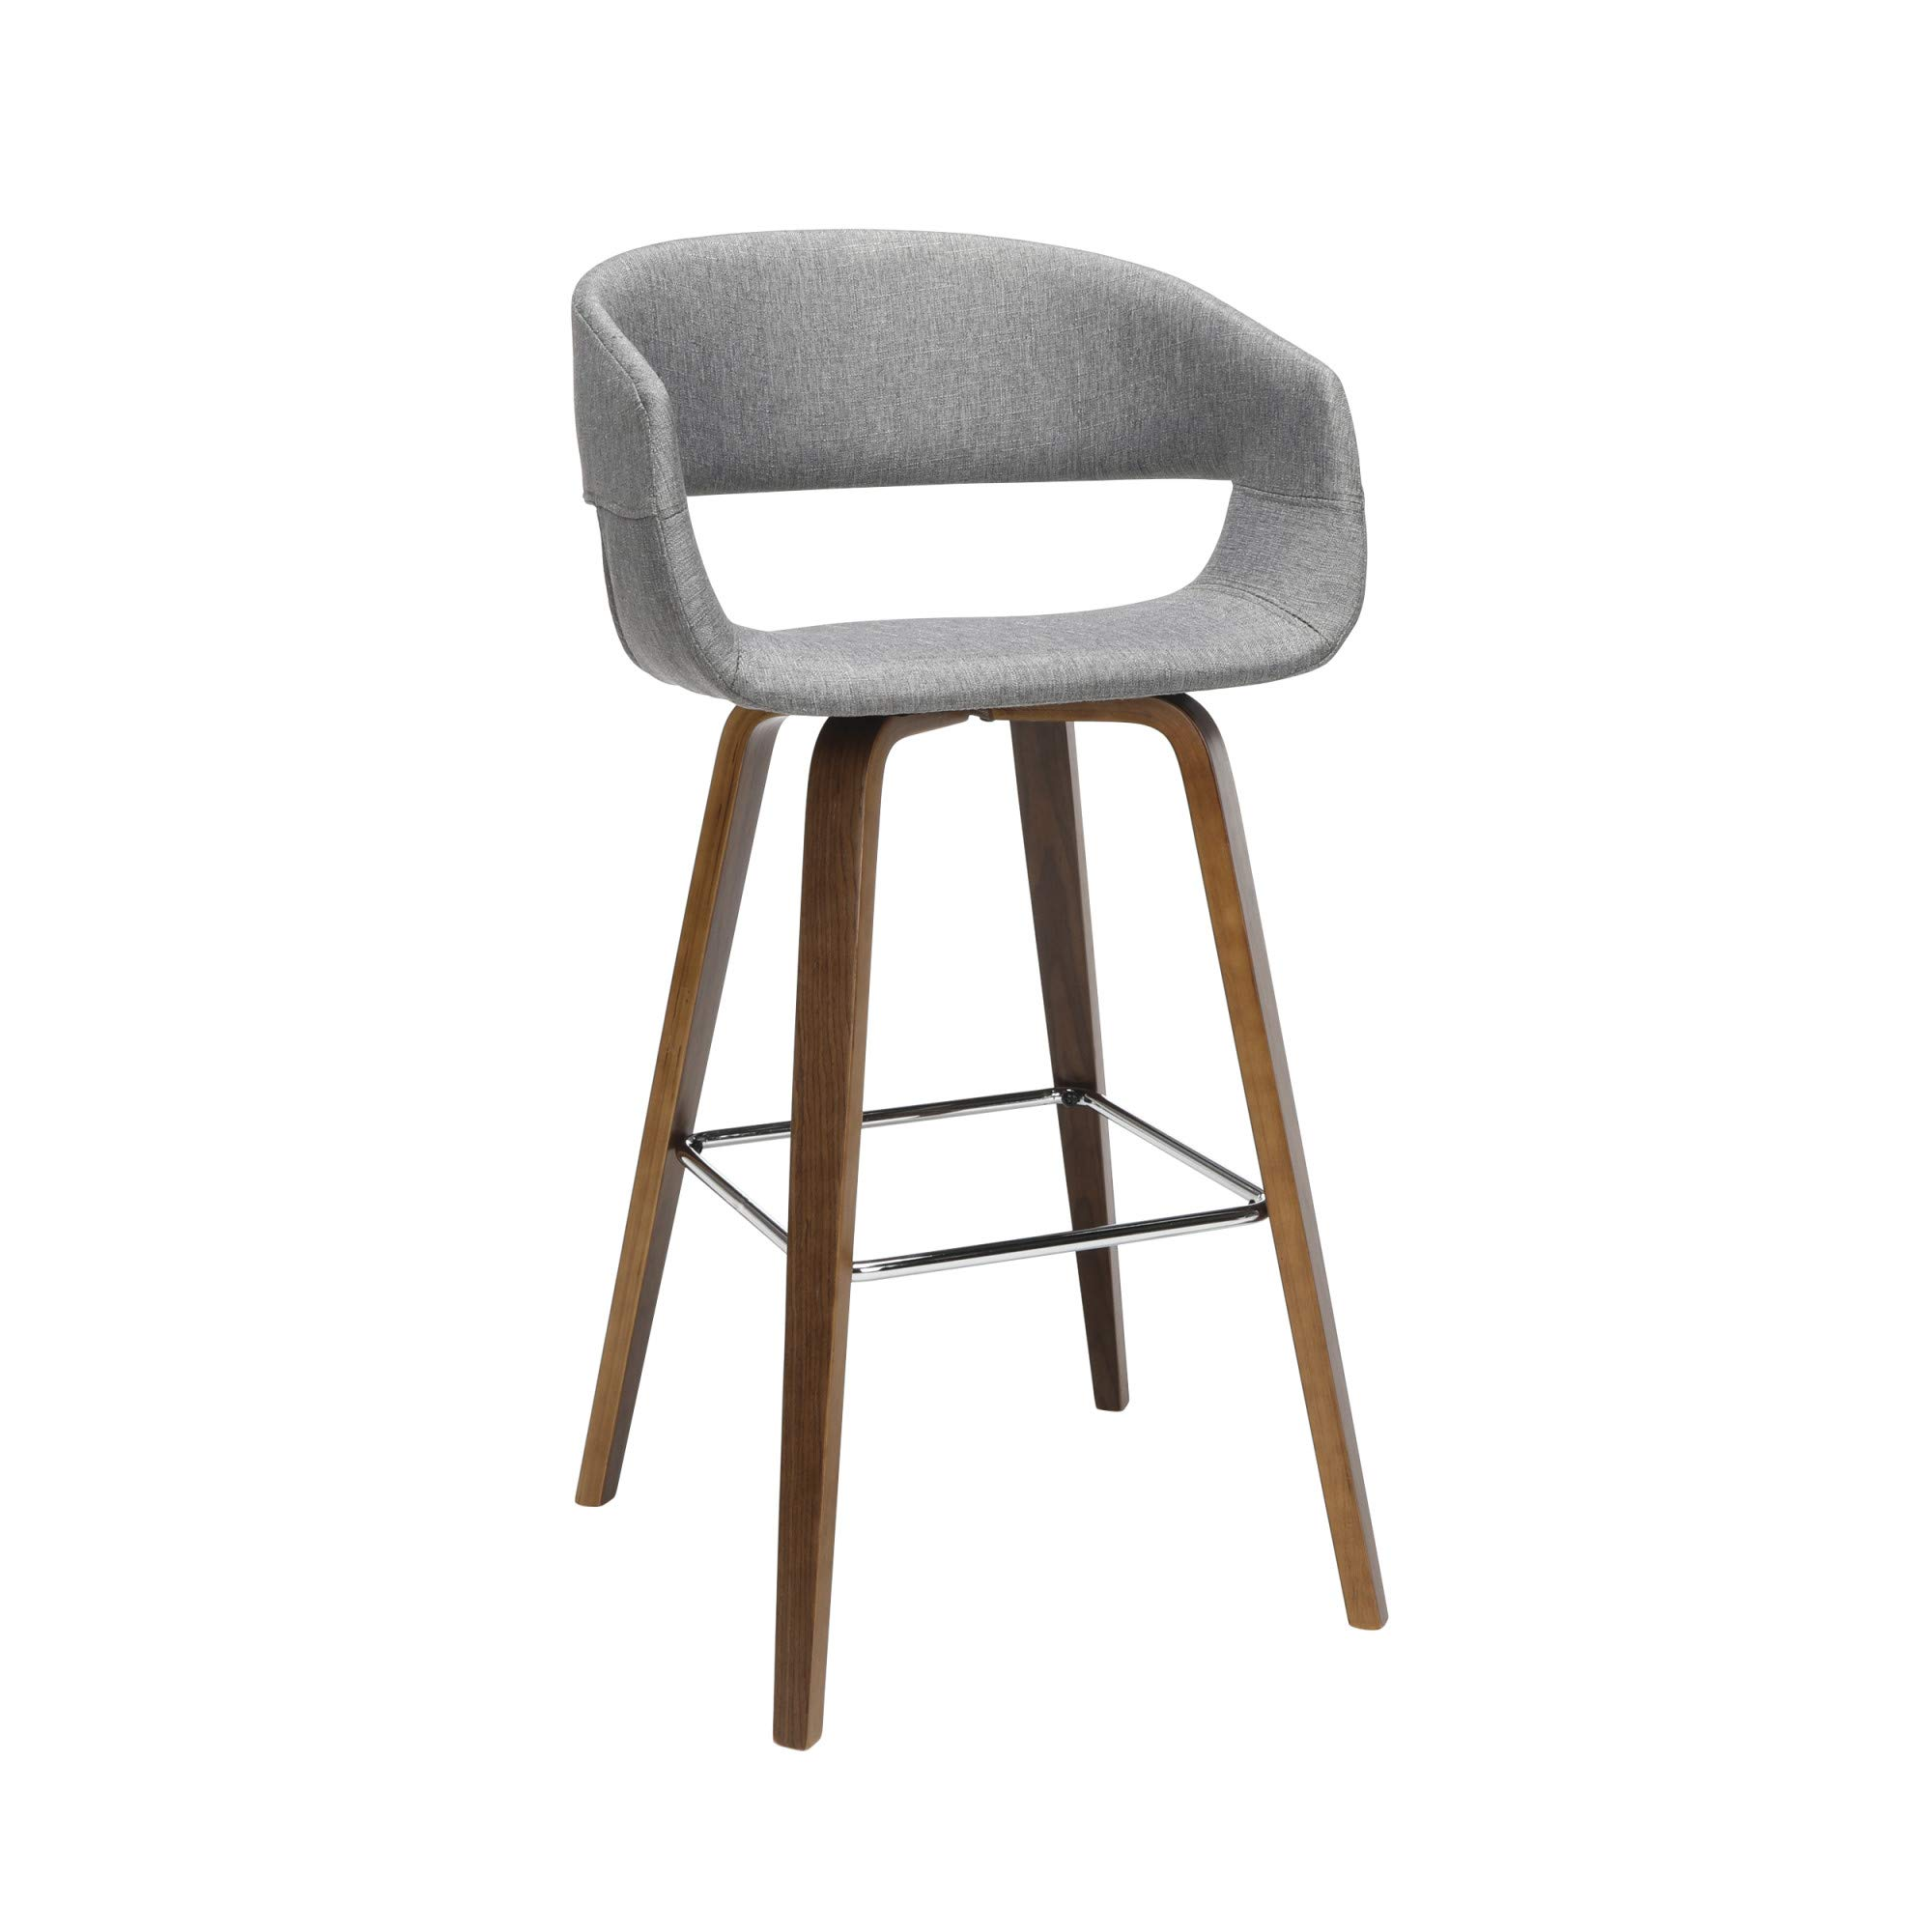 OFM 161 Collection Mid Century Modern 26'' Low Back Bentwood Frame Stool, Fabric Upholstery, 2 Pack, in Light Gray by OFM